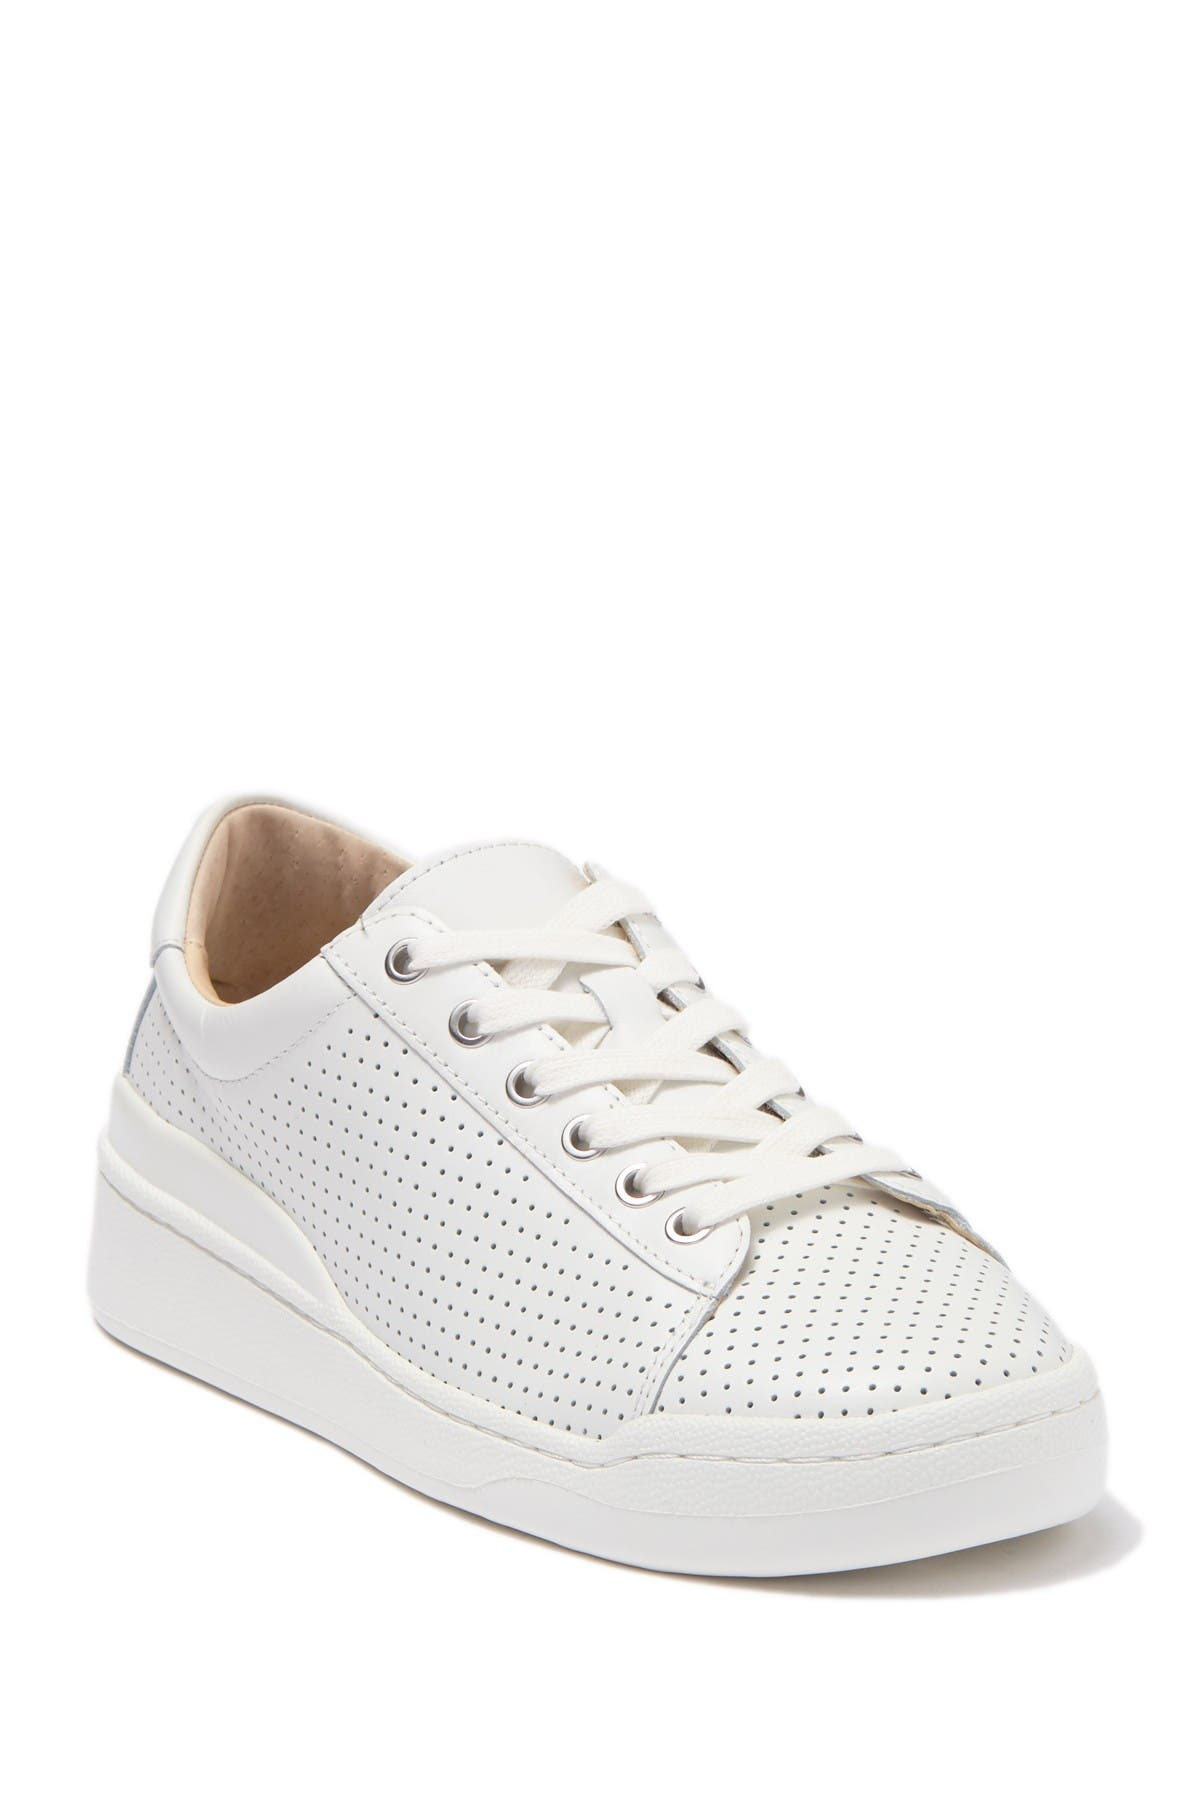 Vince Camuto | Salonee Perforated